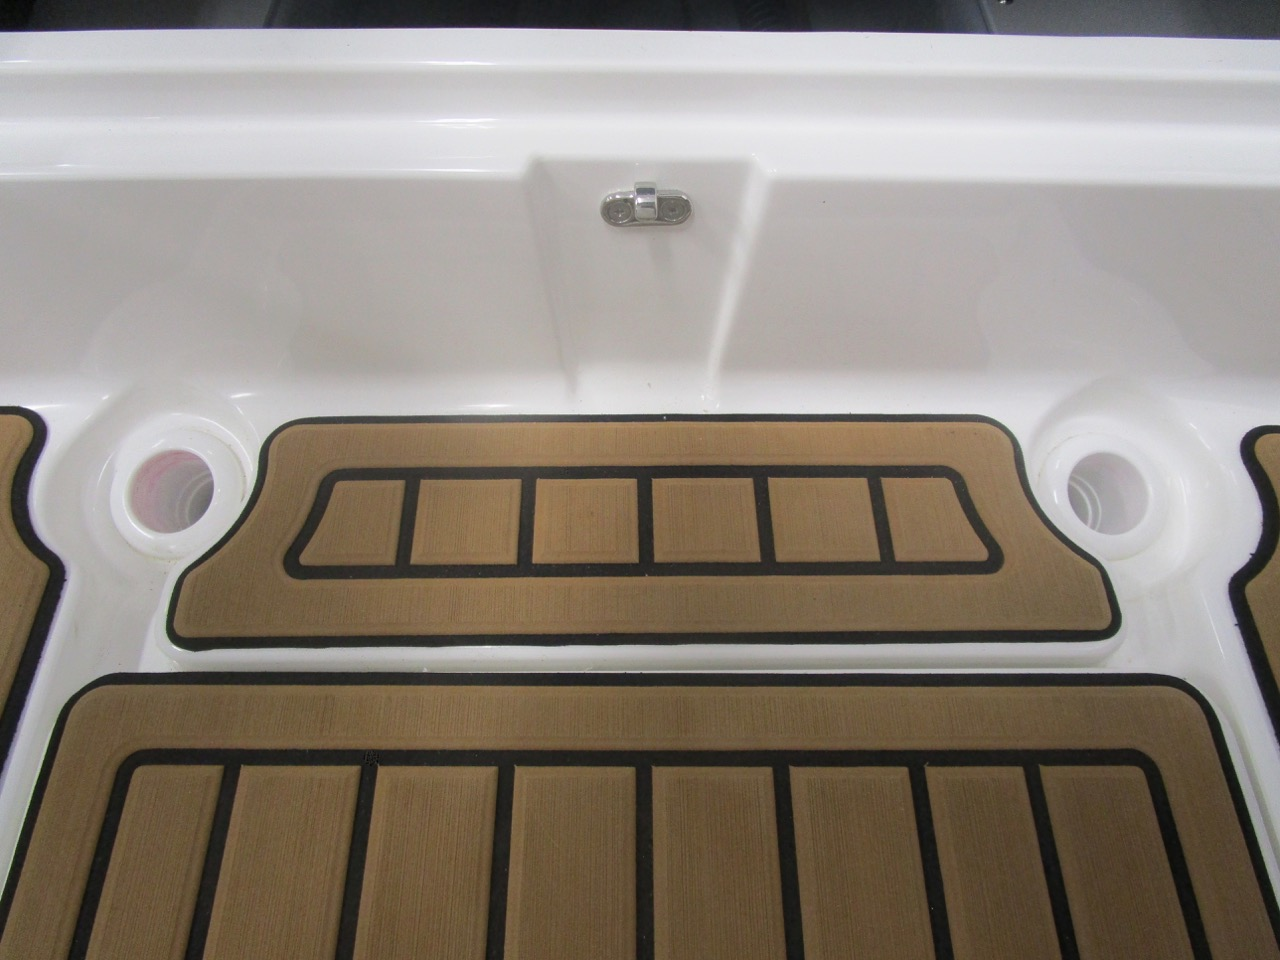 GRAND Golden Line G420 RIB large deck drains